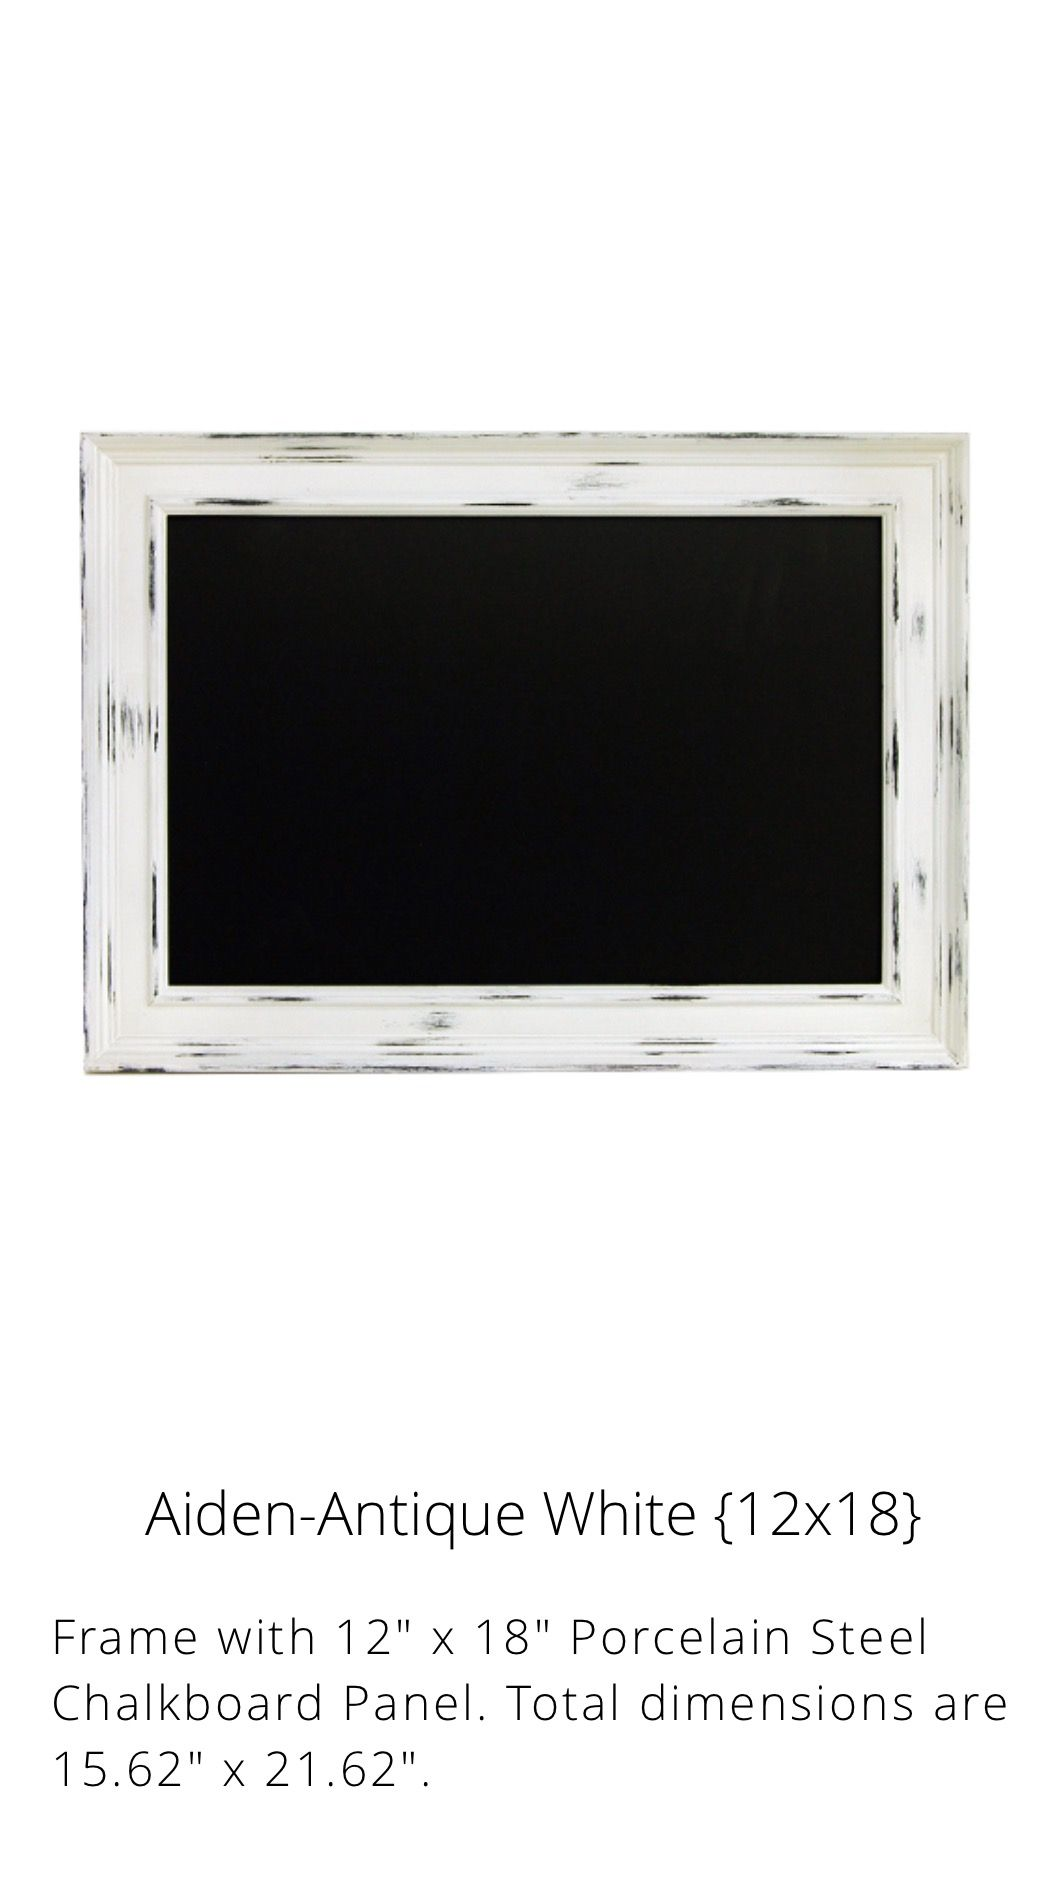 Aiden Antique White Porcelain Magnetic Chalkboard- Chalk Couture ...